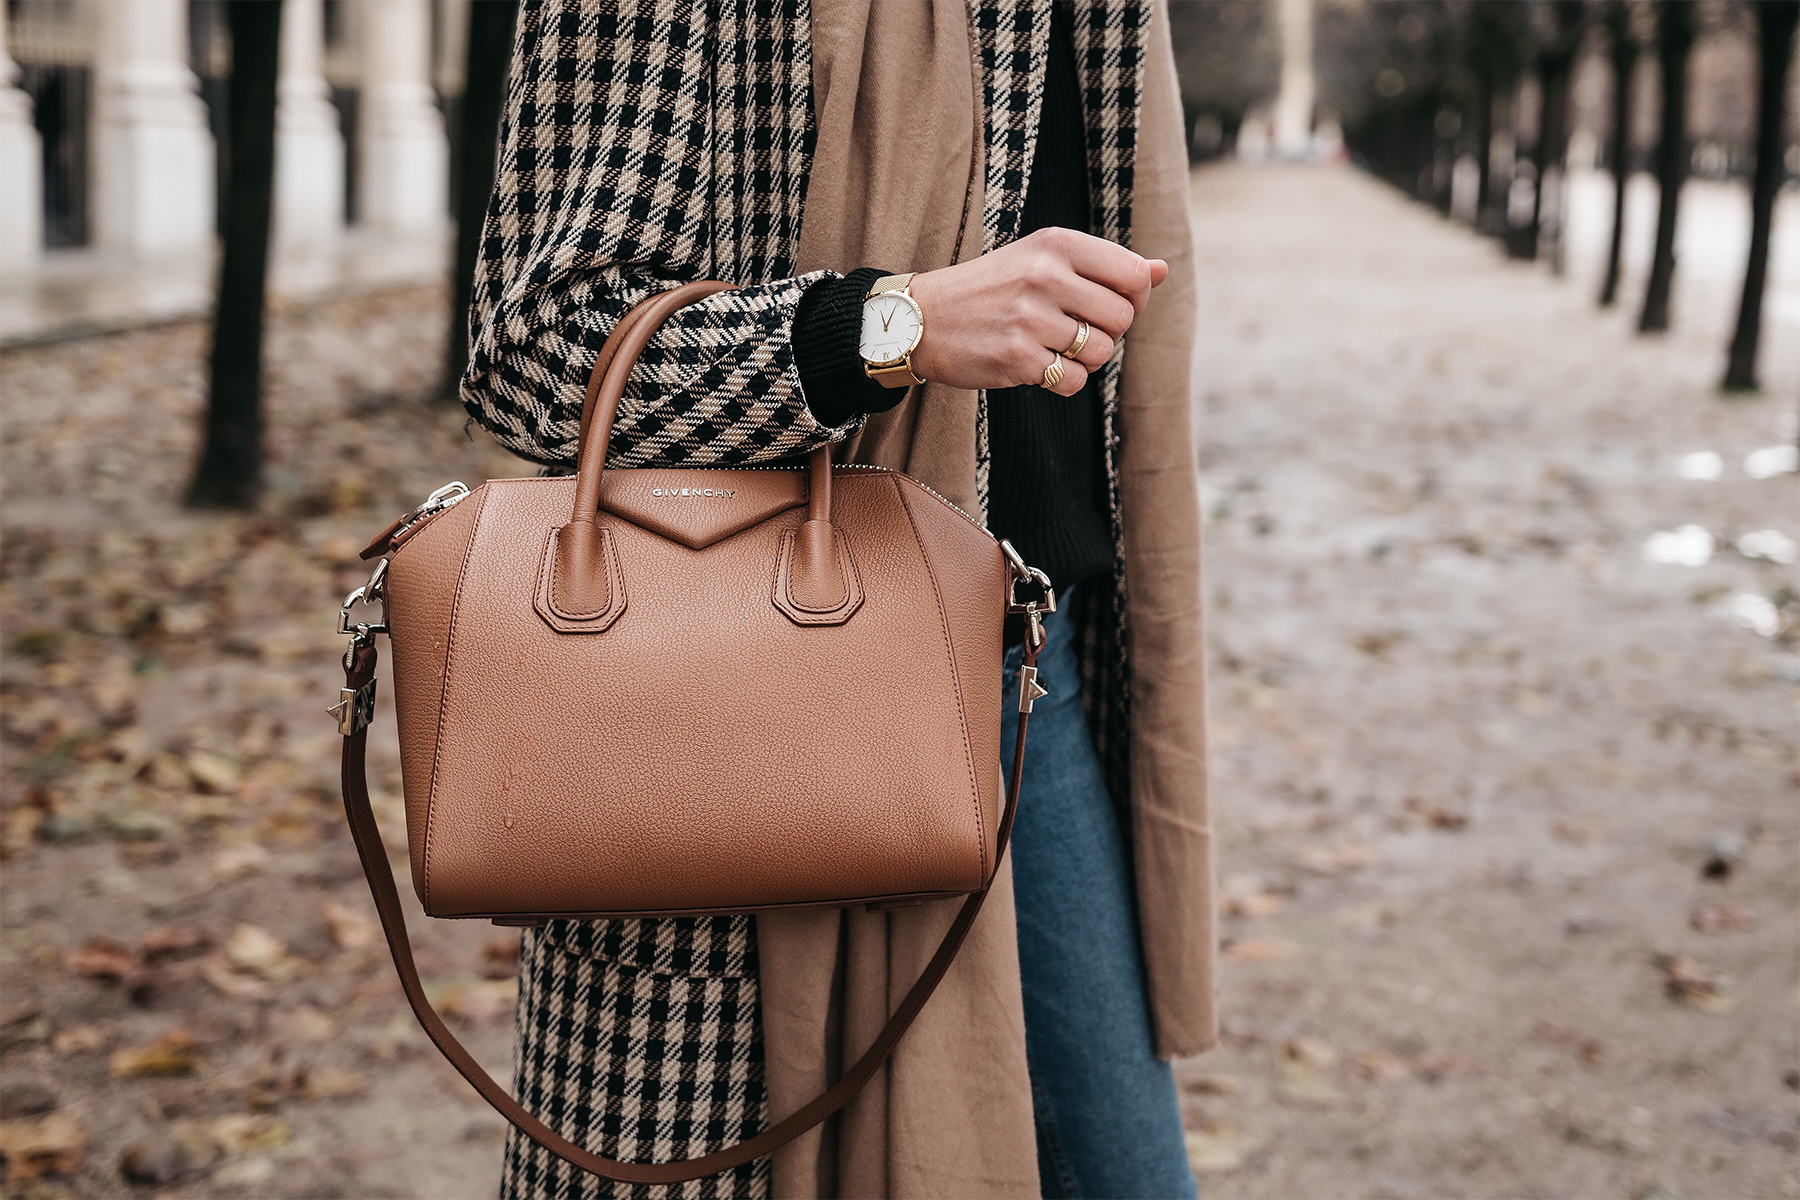 Givenchy Antigona Cognac Satchel Plaid Coat Tan Scarf Fashion Jackson Dallas Blogger Fashion Blogger Street Style